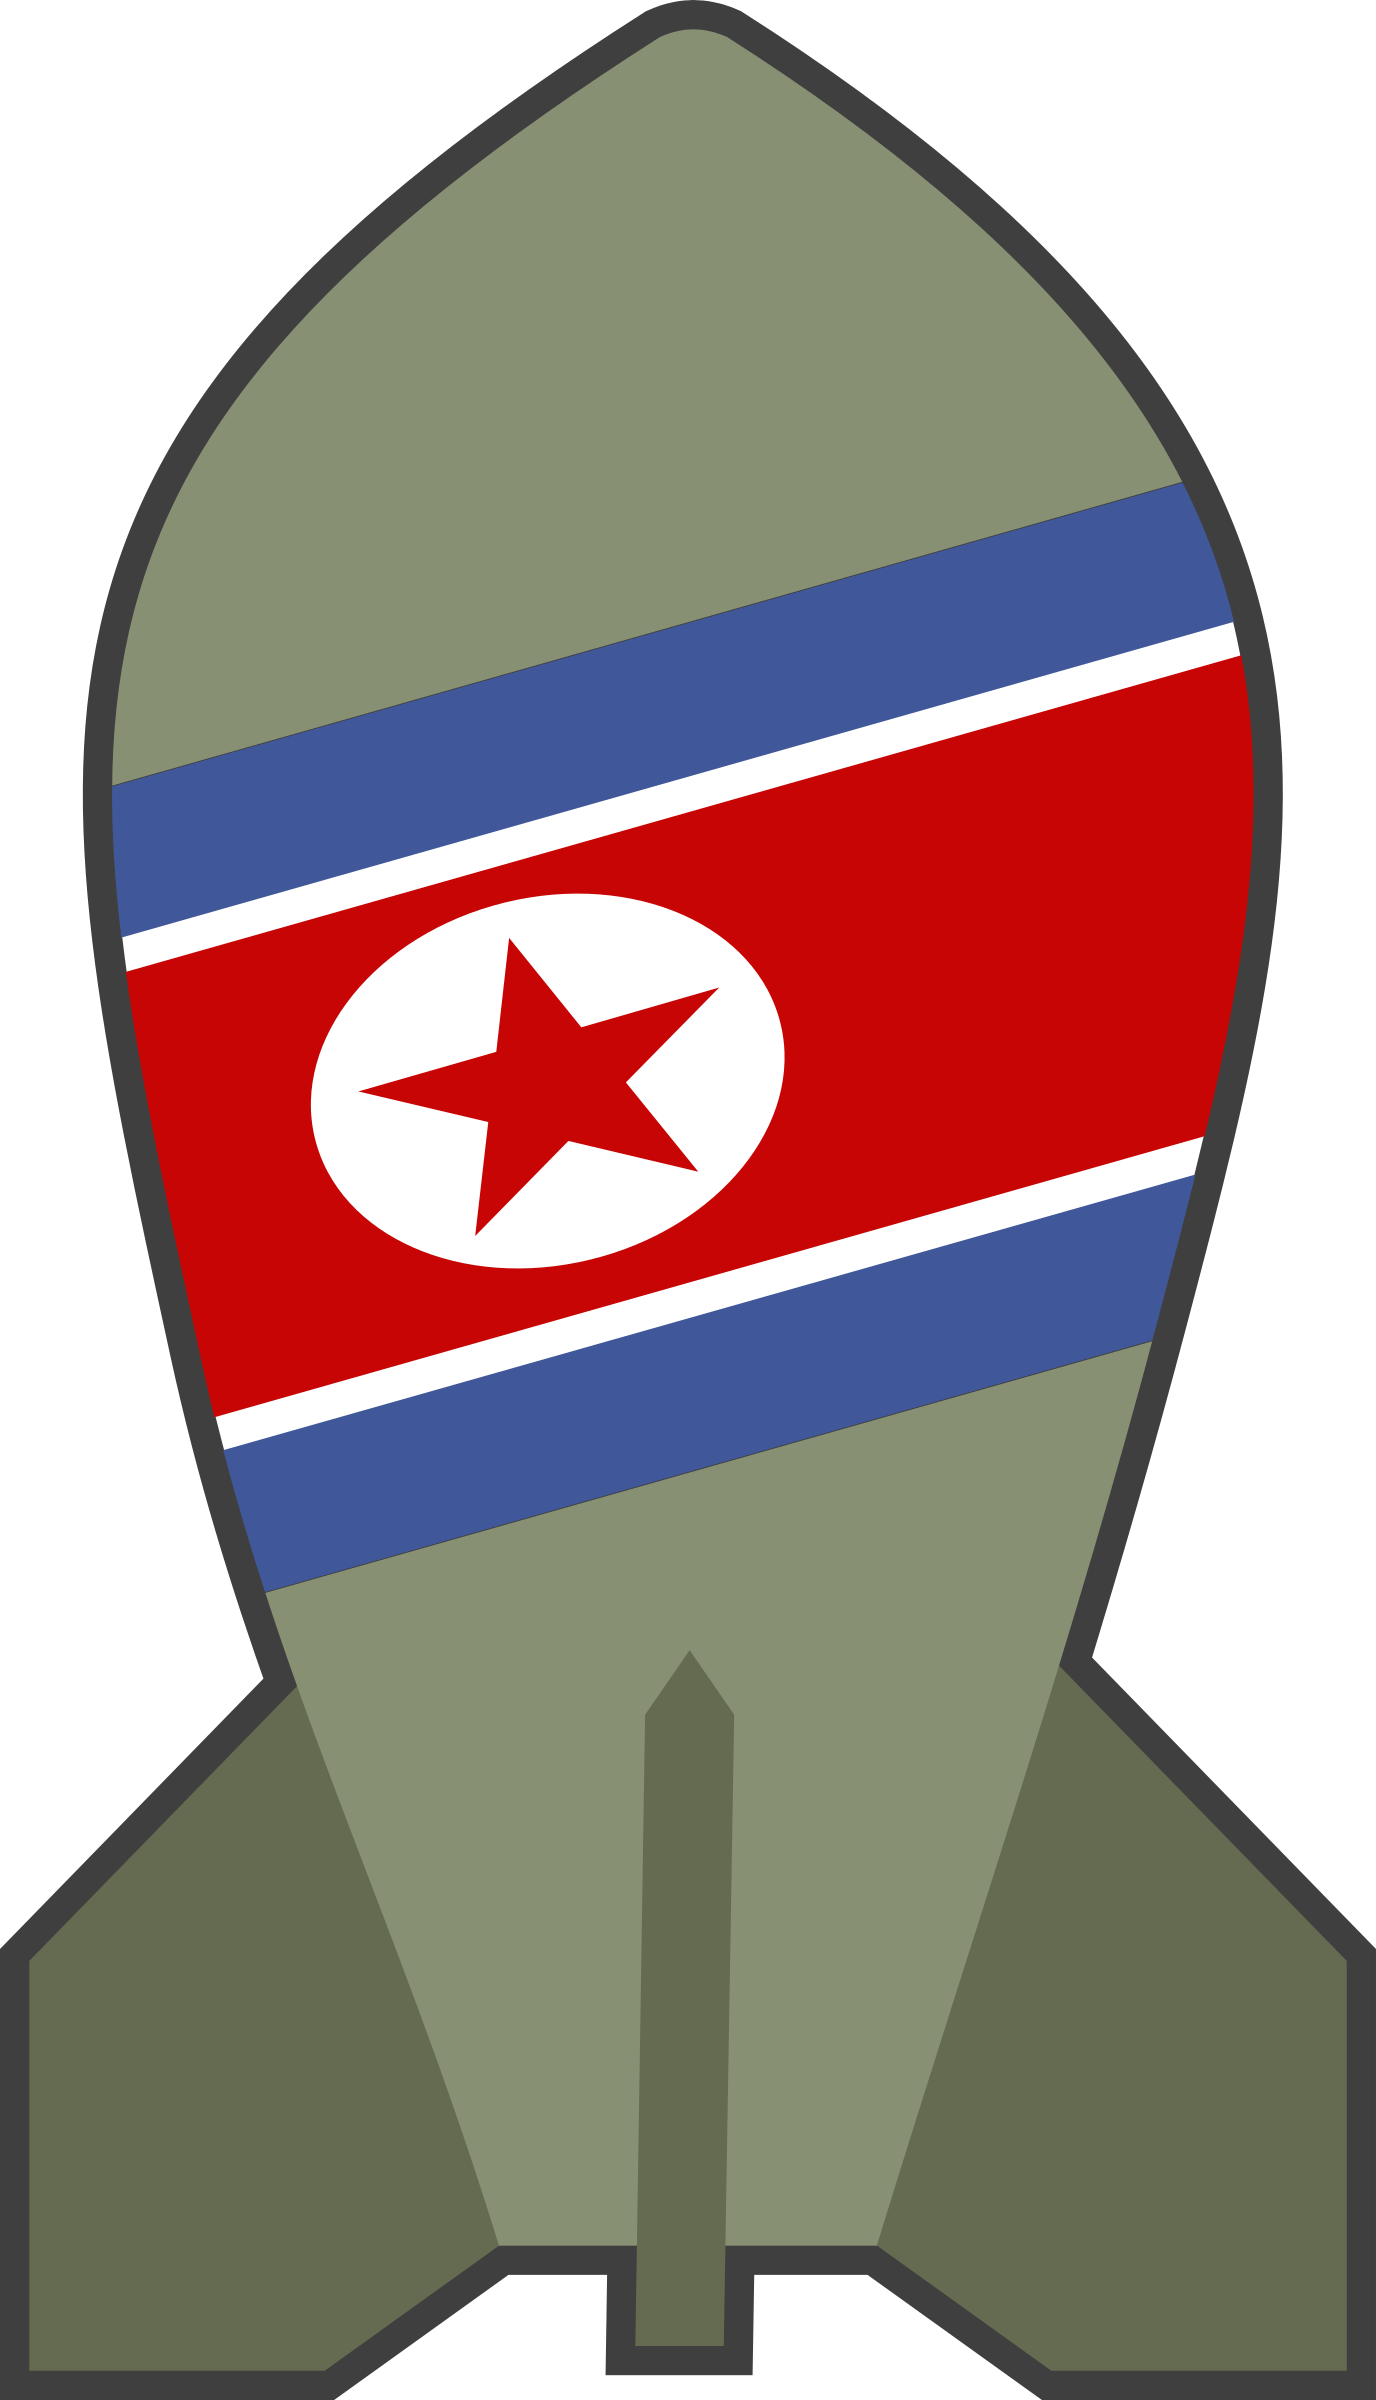 Simple Cartoon North Korea Bomb by qubodup